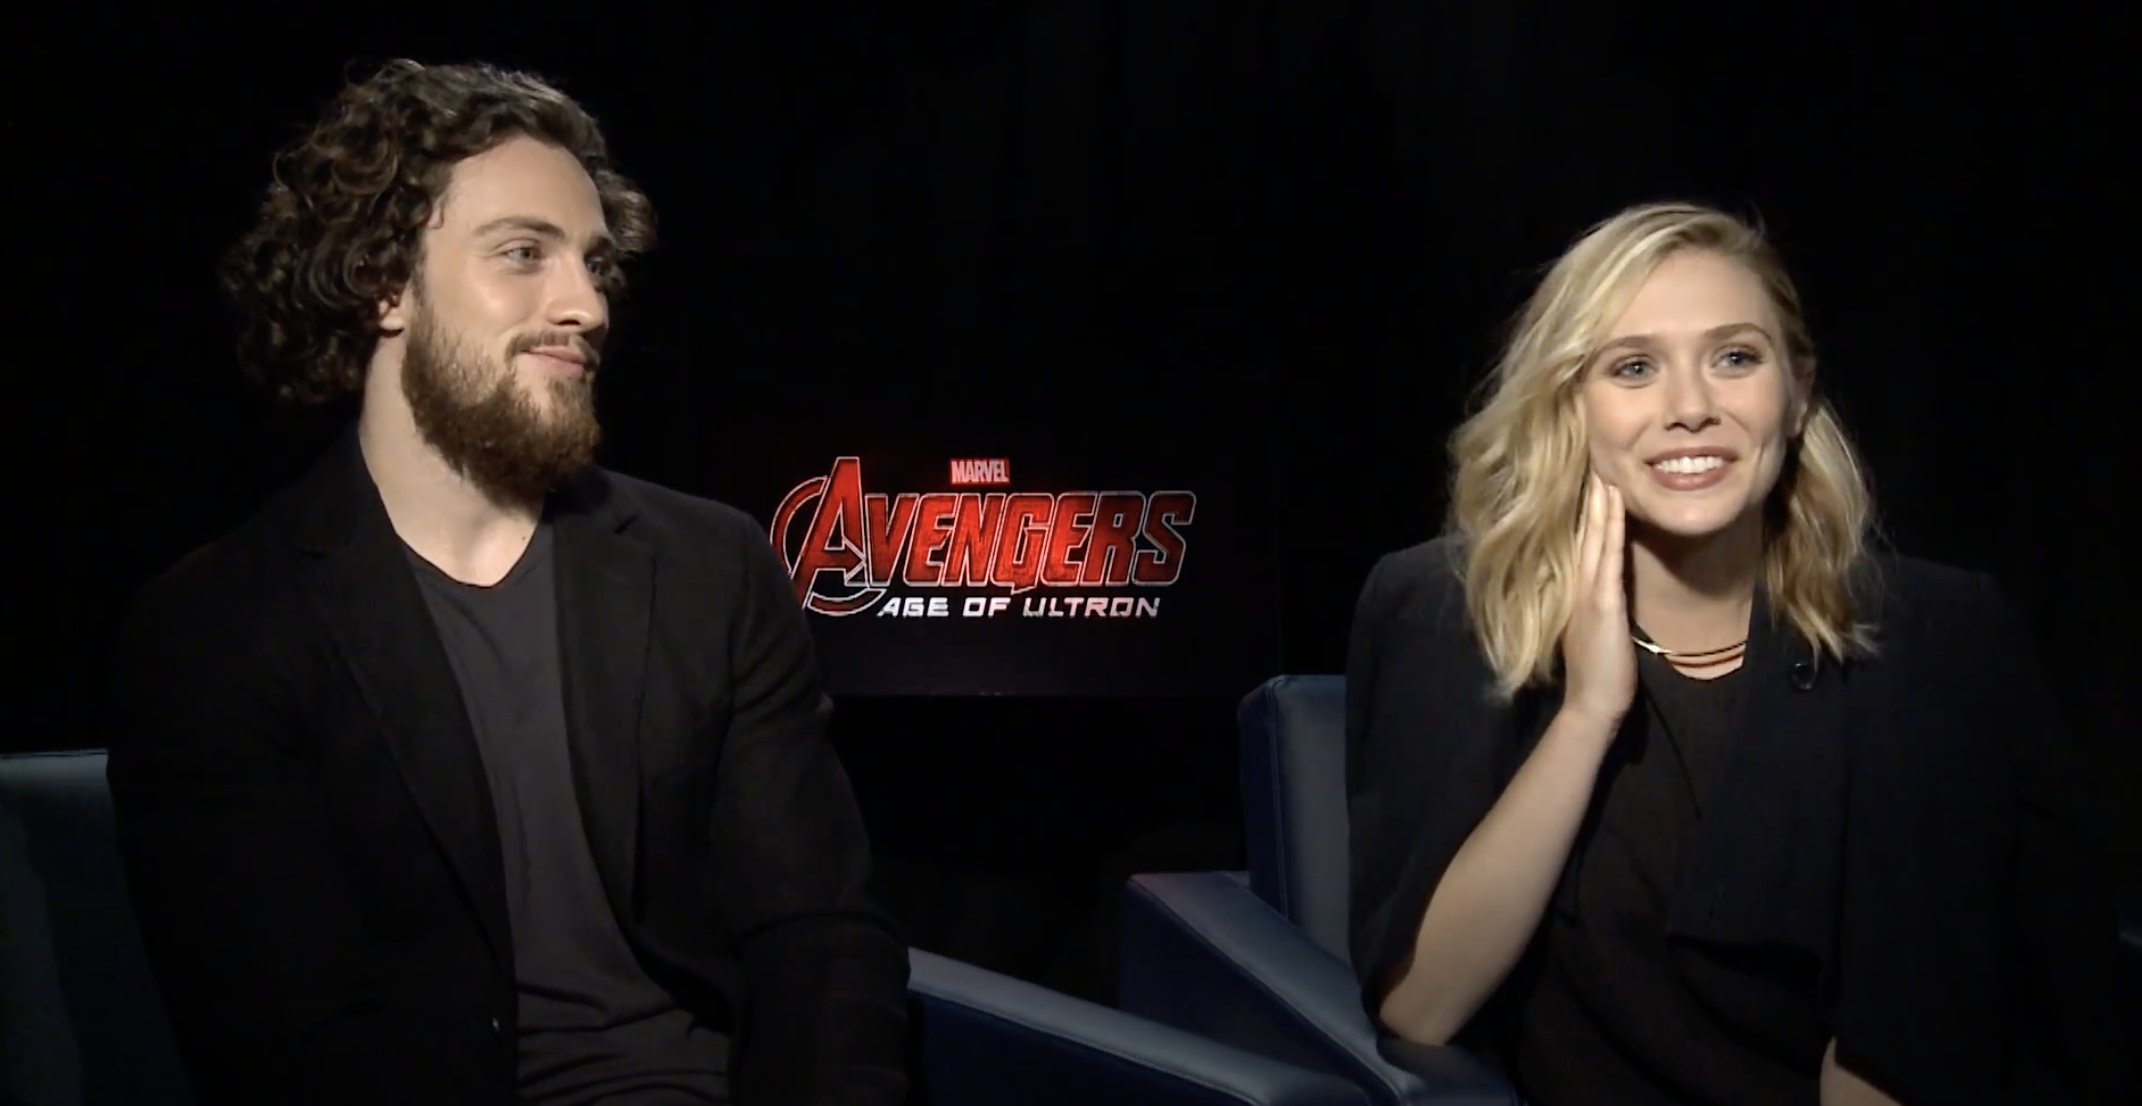 Elizabeth Olsen and Aaron Taylor-Johnson being interviewed about Avengers: Age of Ultron